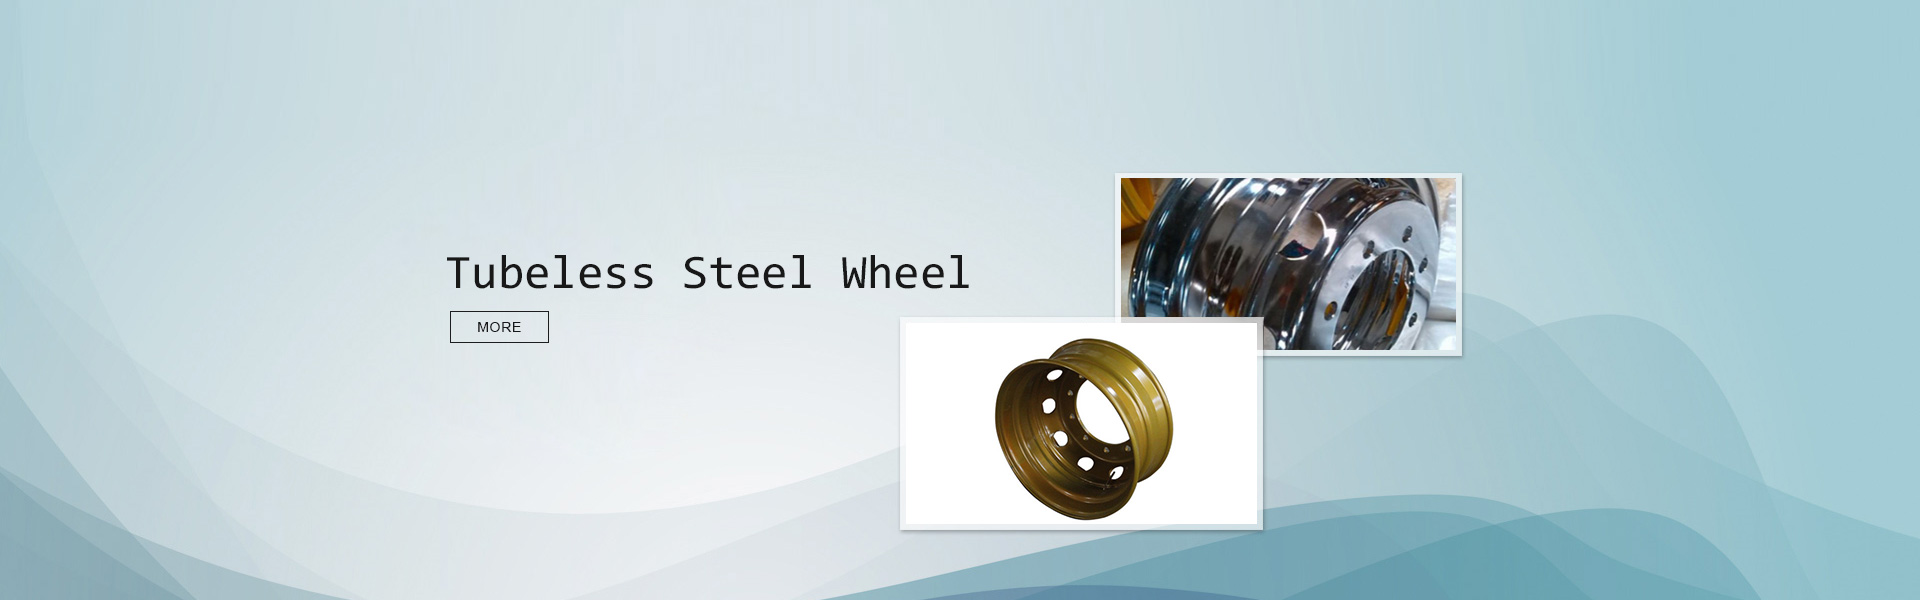 JIASHAN JIUJIU WHEEL MANUFACTURING CO.LTD